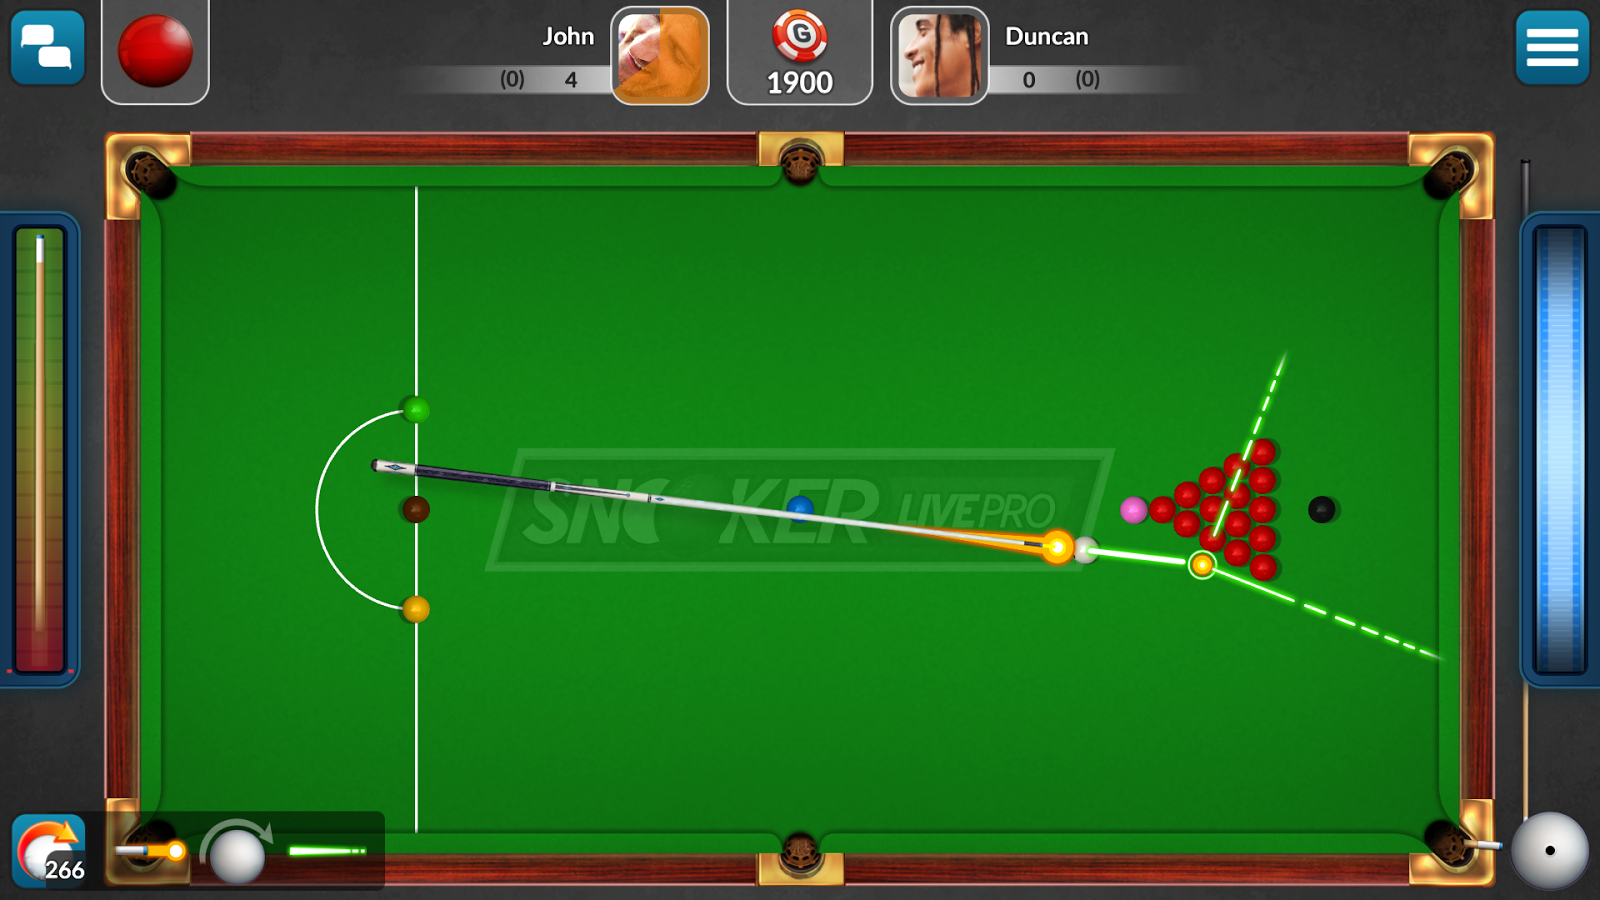 Snooker Live Pro Screenshot 12